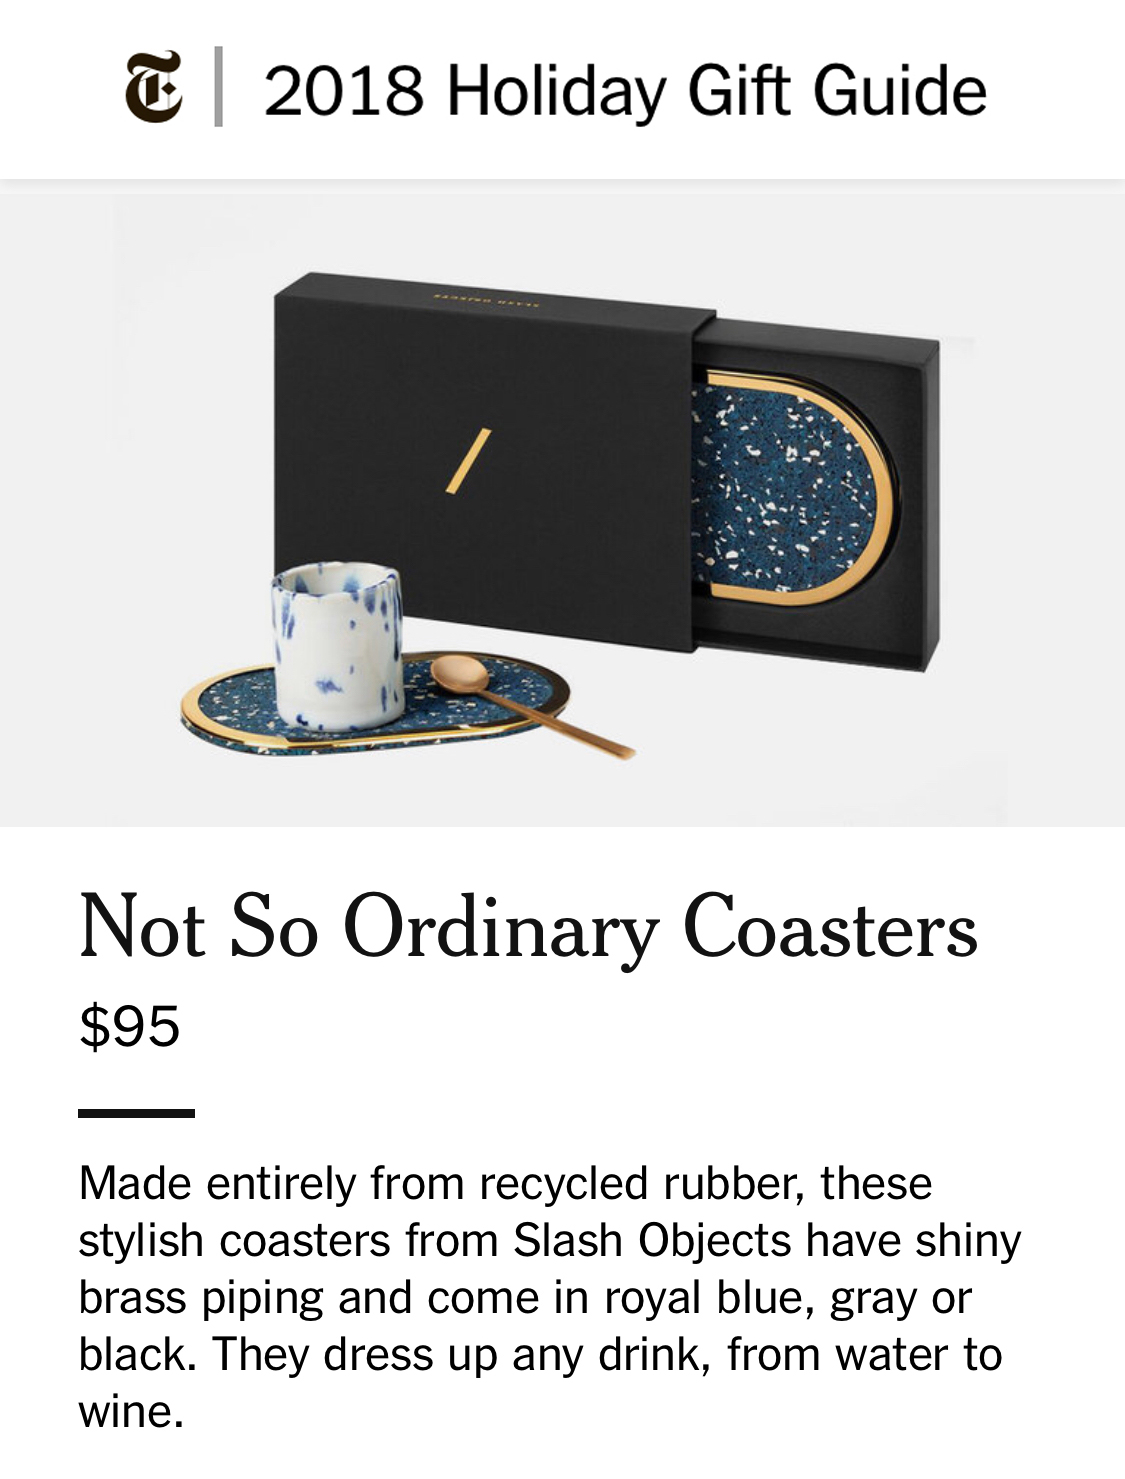 NYTimes-Gift-Guide---Slash-Objects.jpg